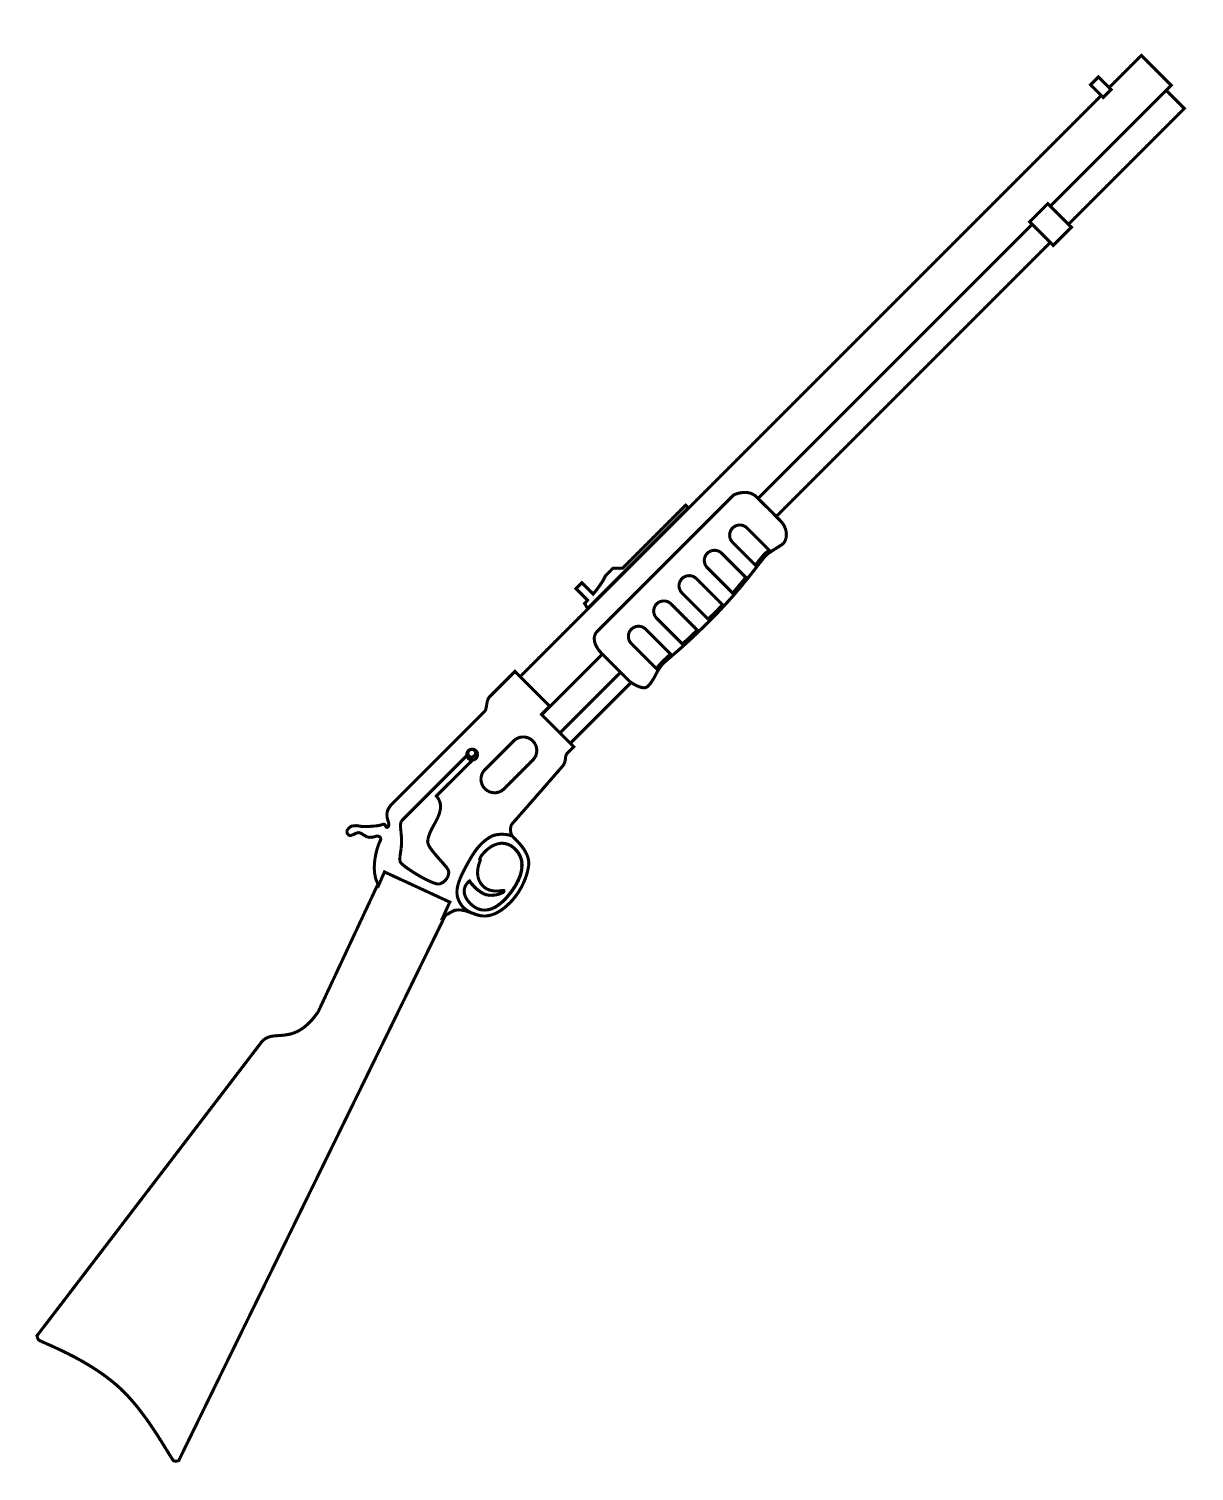 Pistol coloring pages to download and print for free